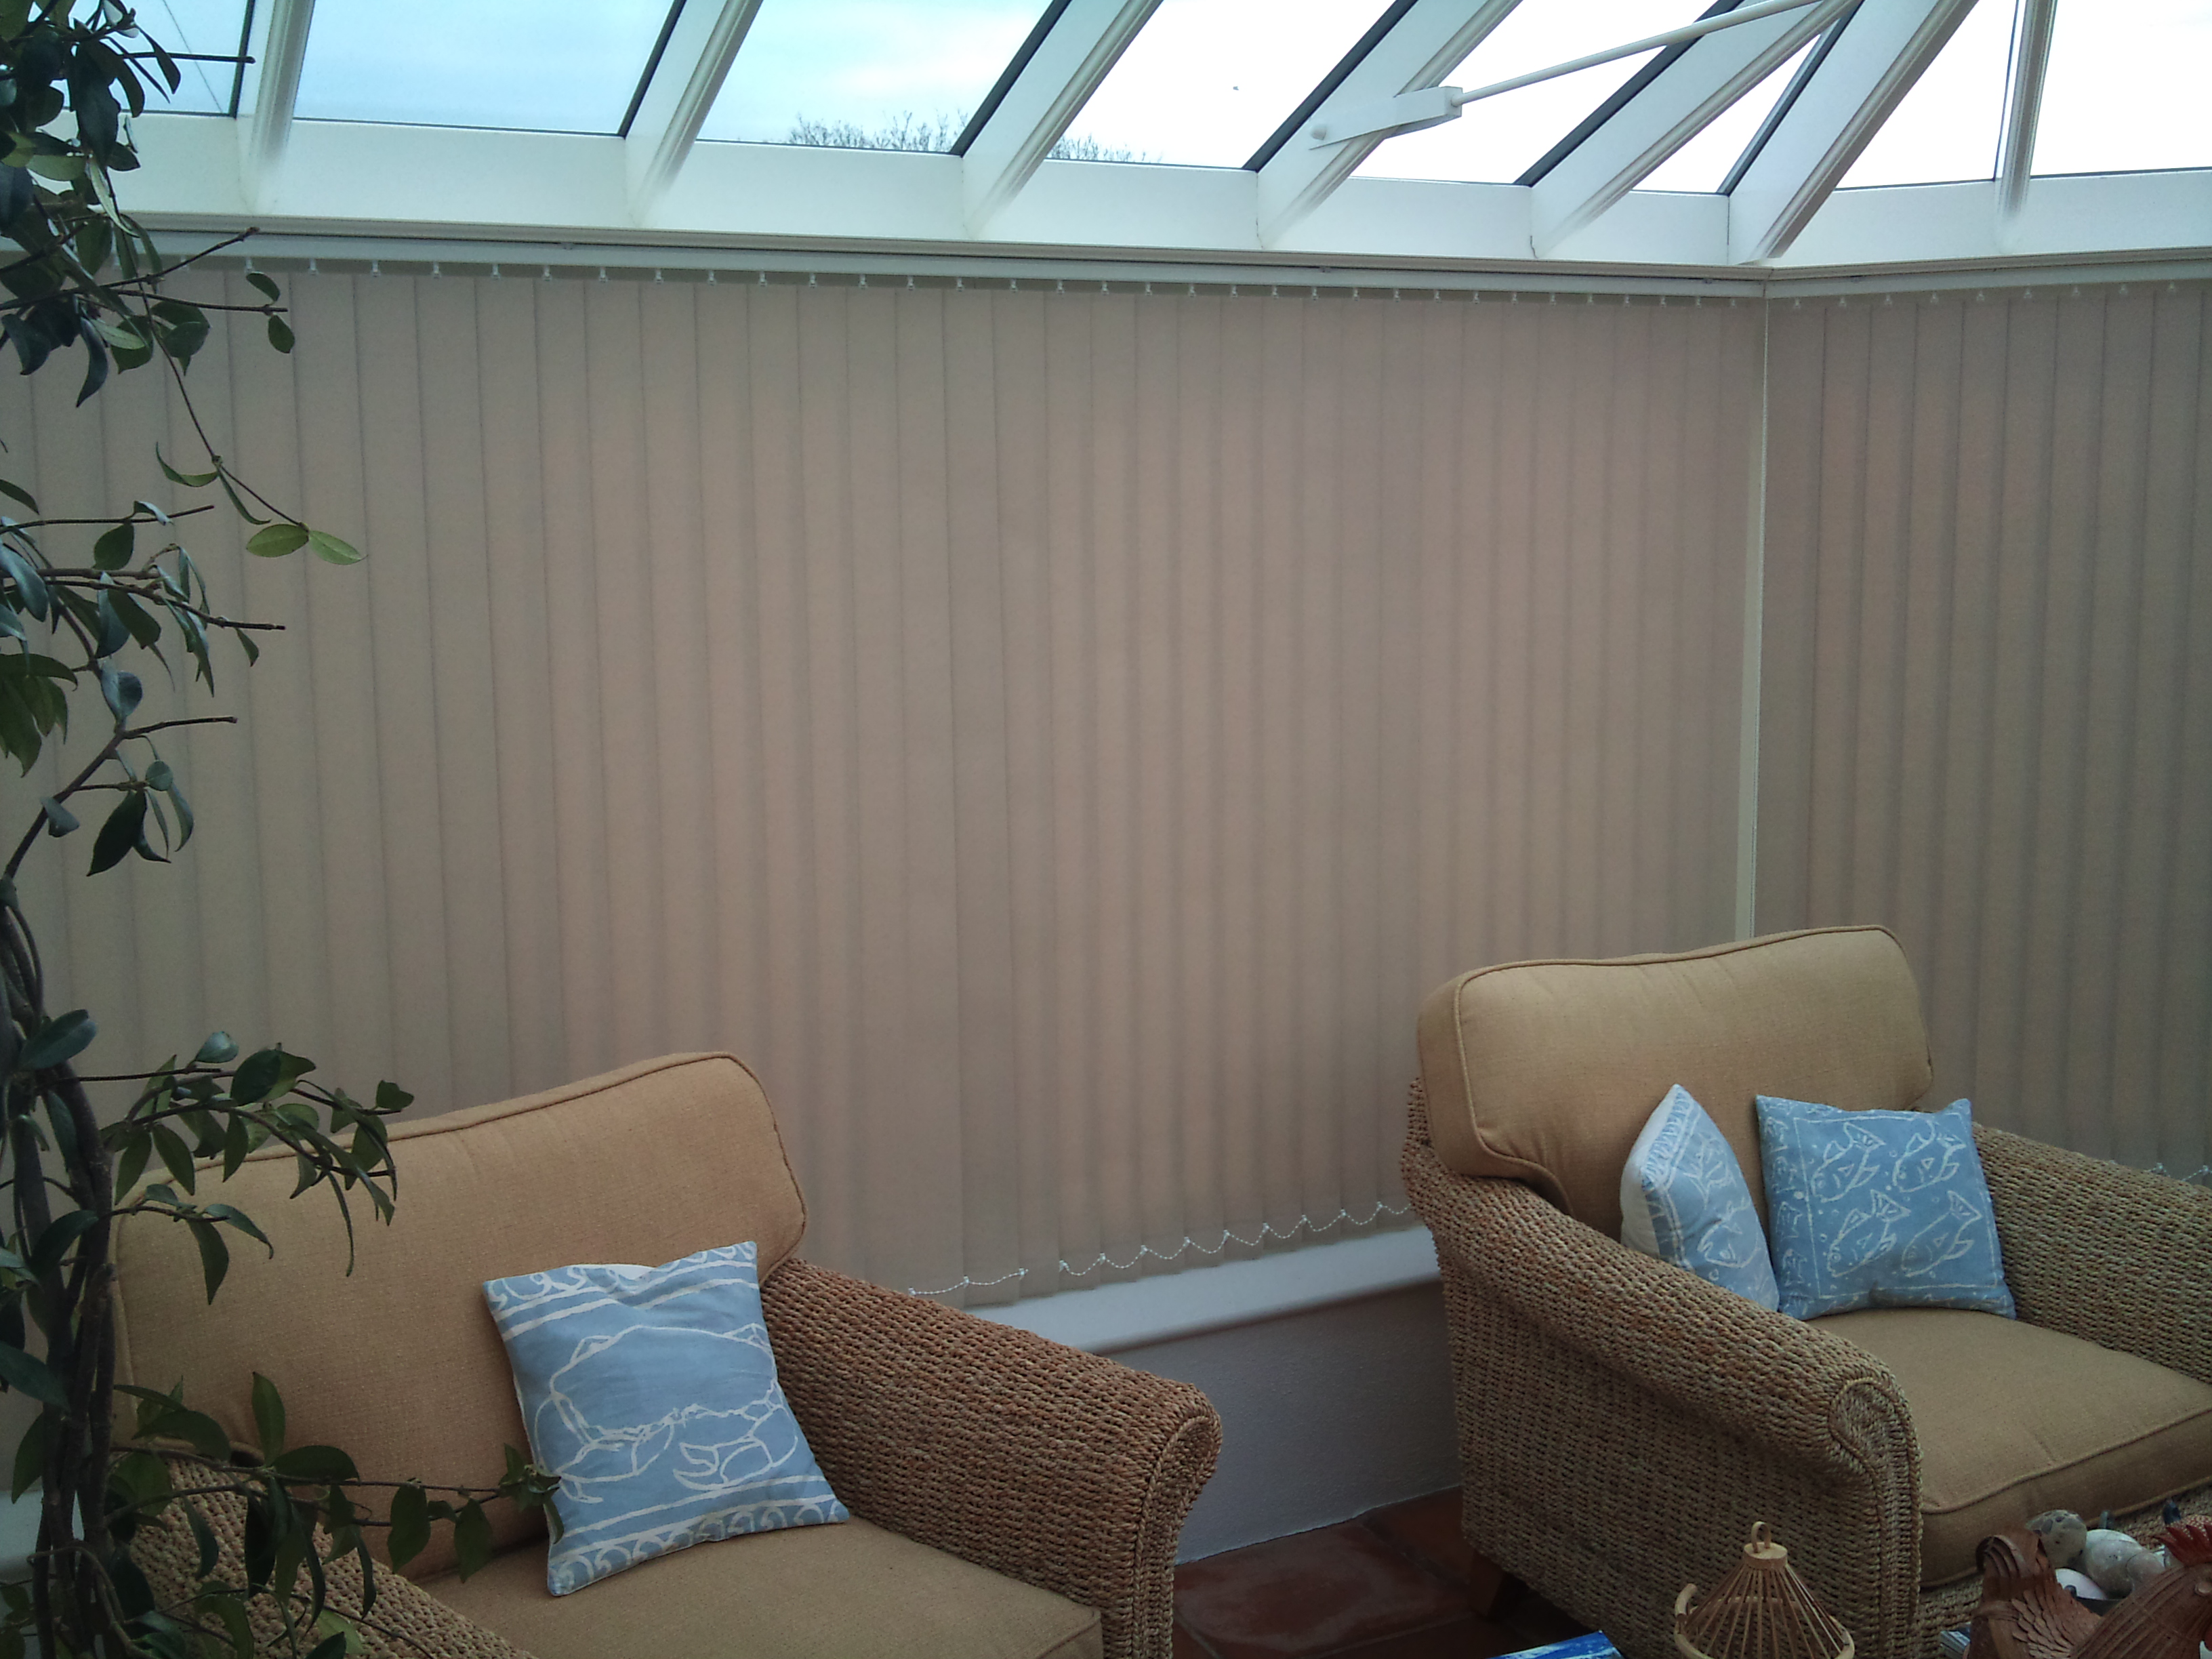 harmony blinds for of in headrail window curved item bay gallery track vertical bristol with blind looking